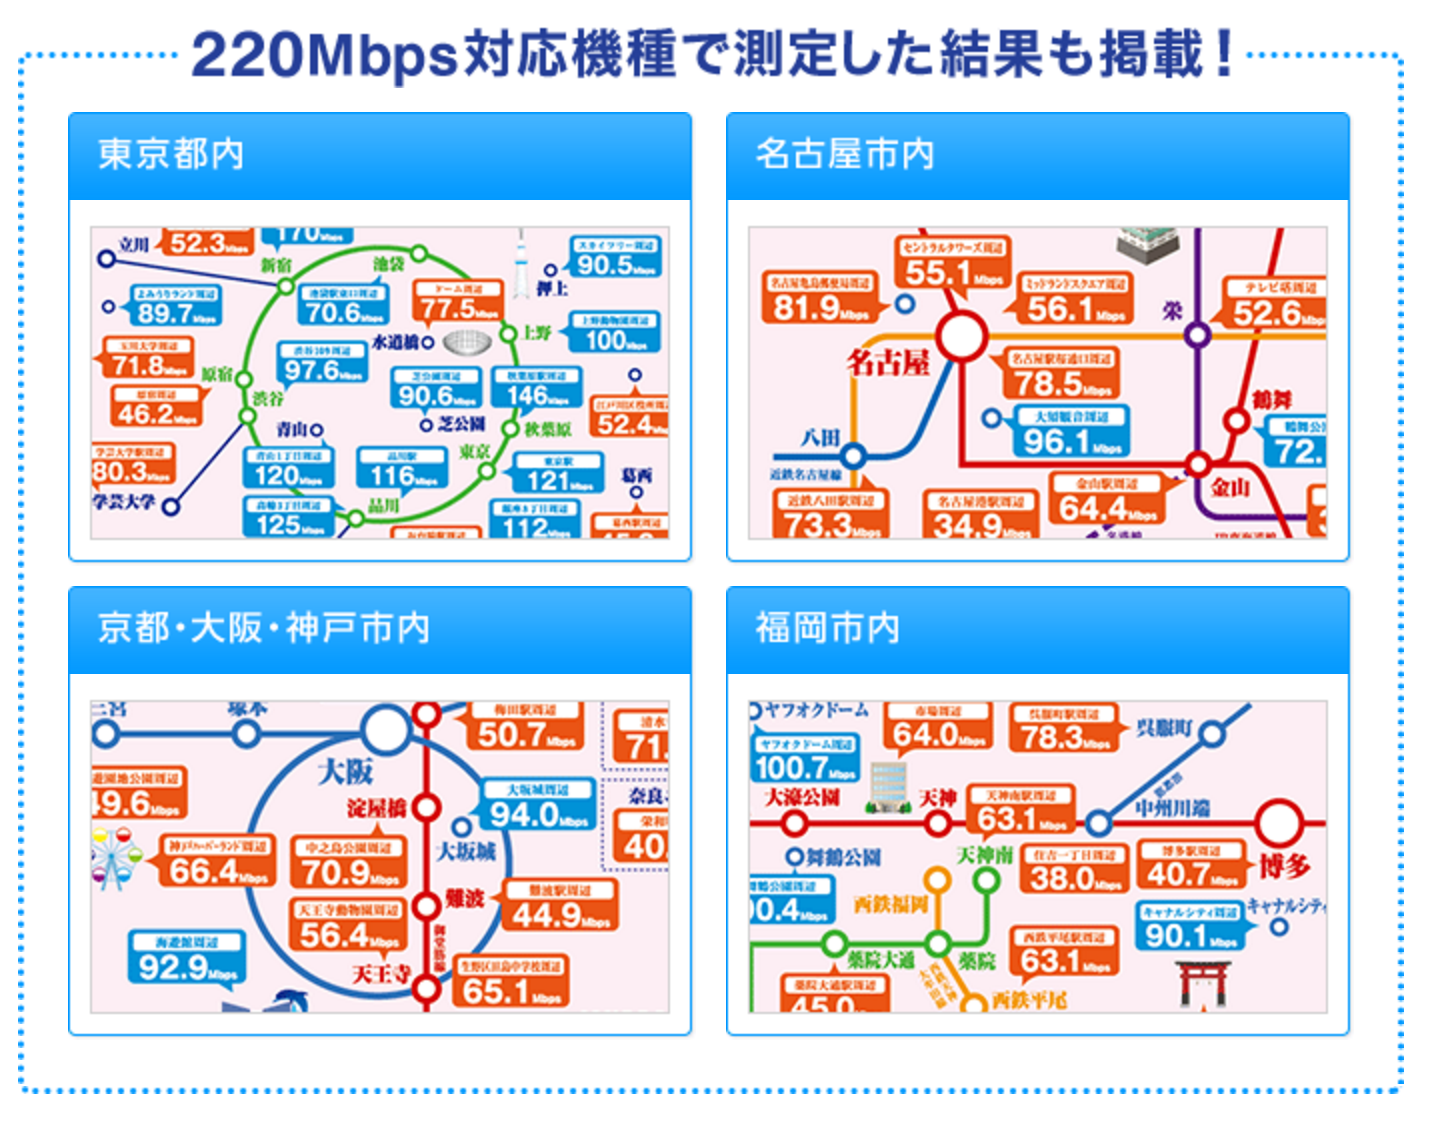 WiMAX_電車